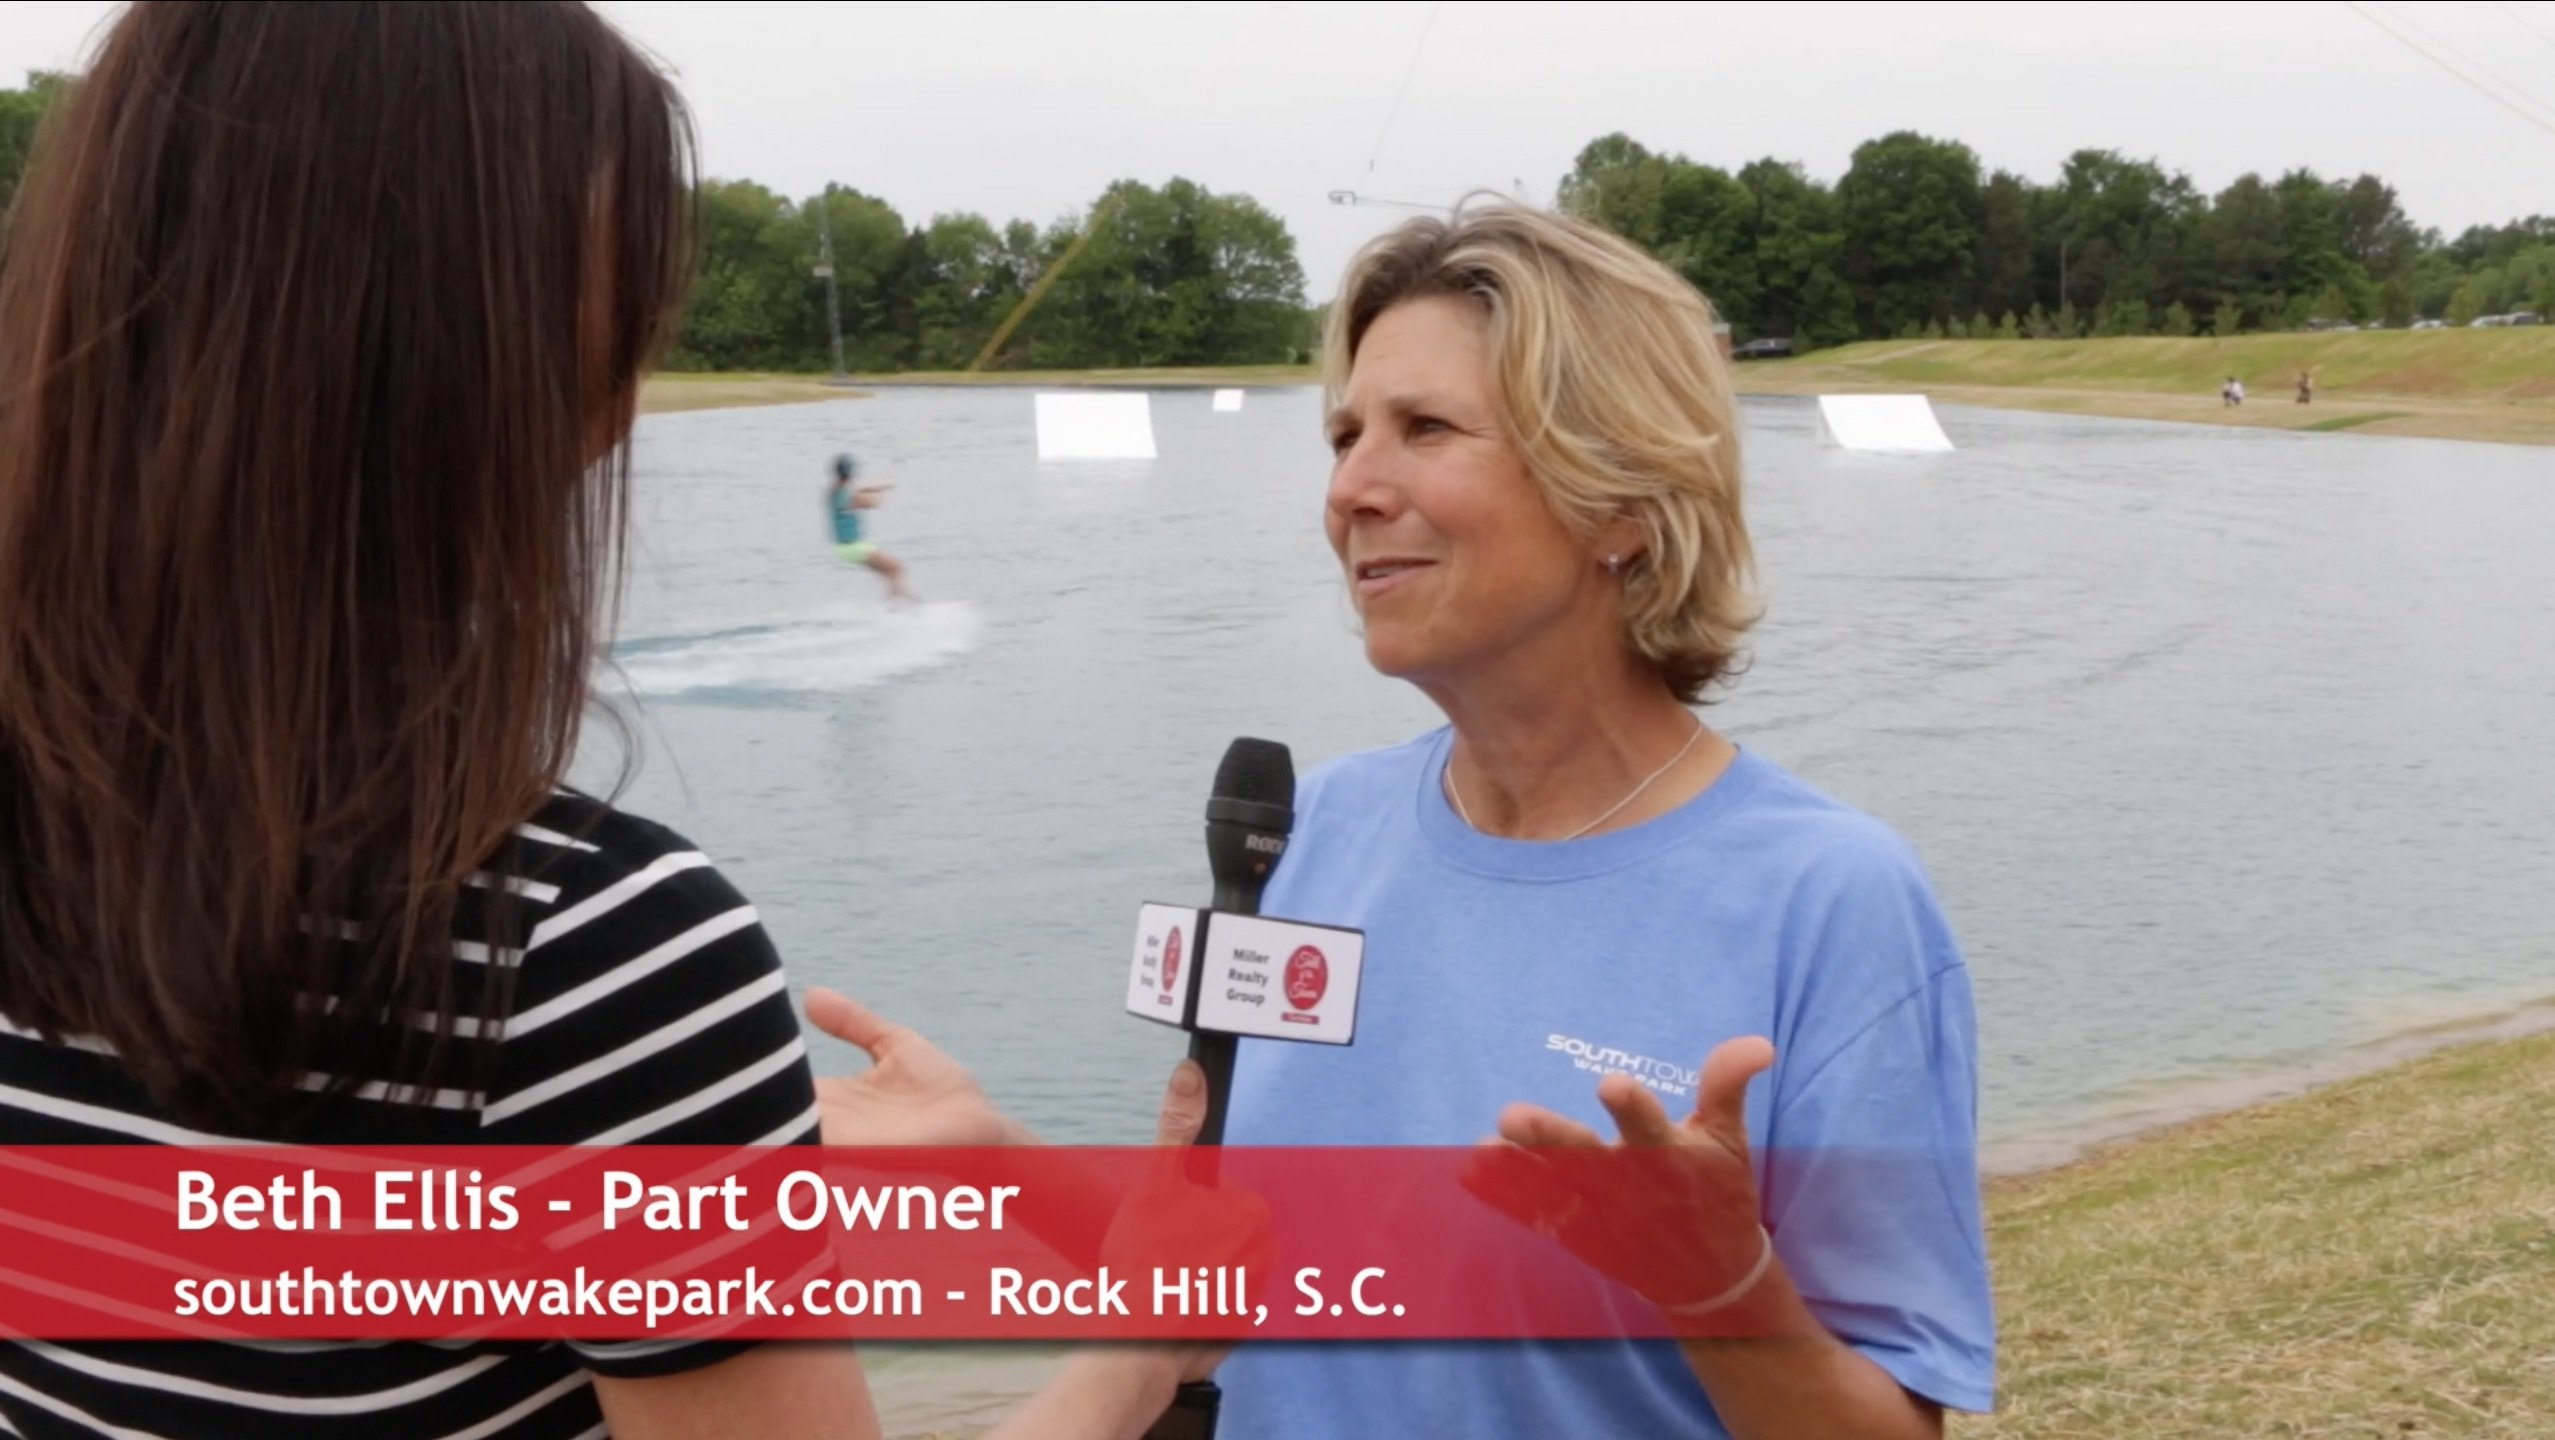 Southtown Wake Park Opens in Rock Hill